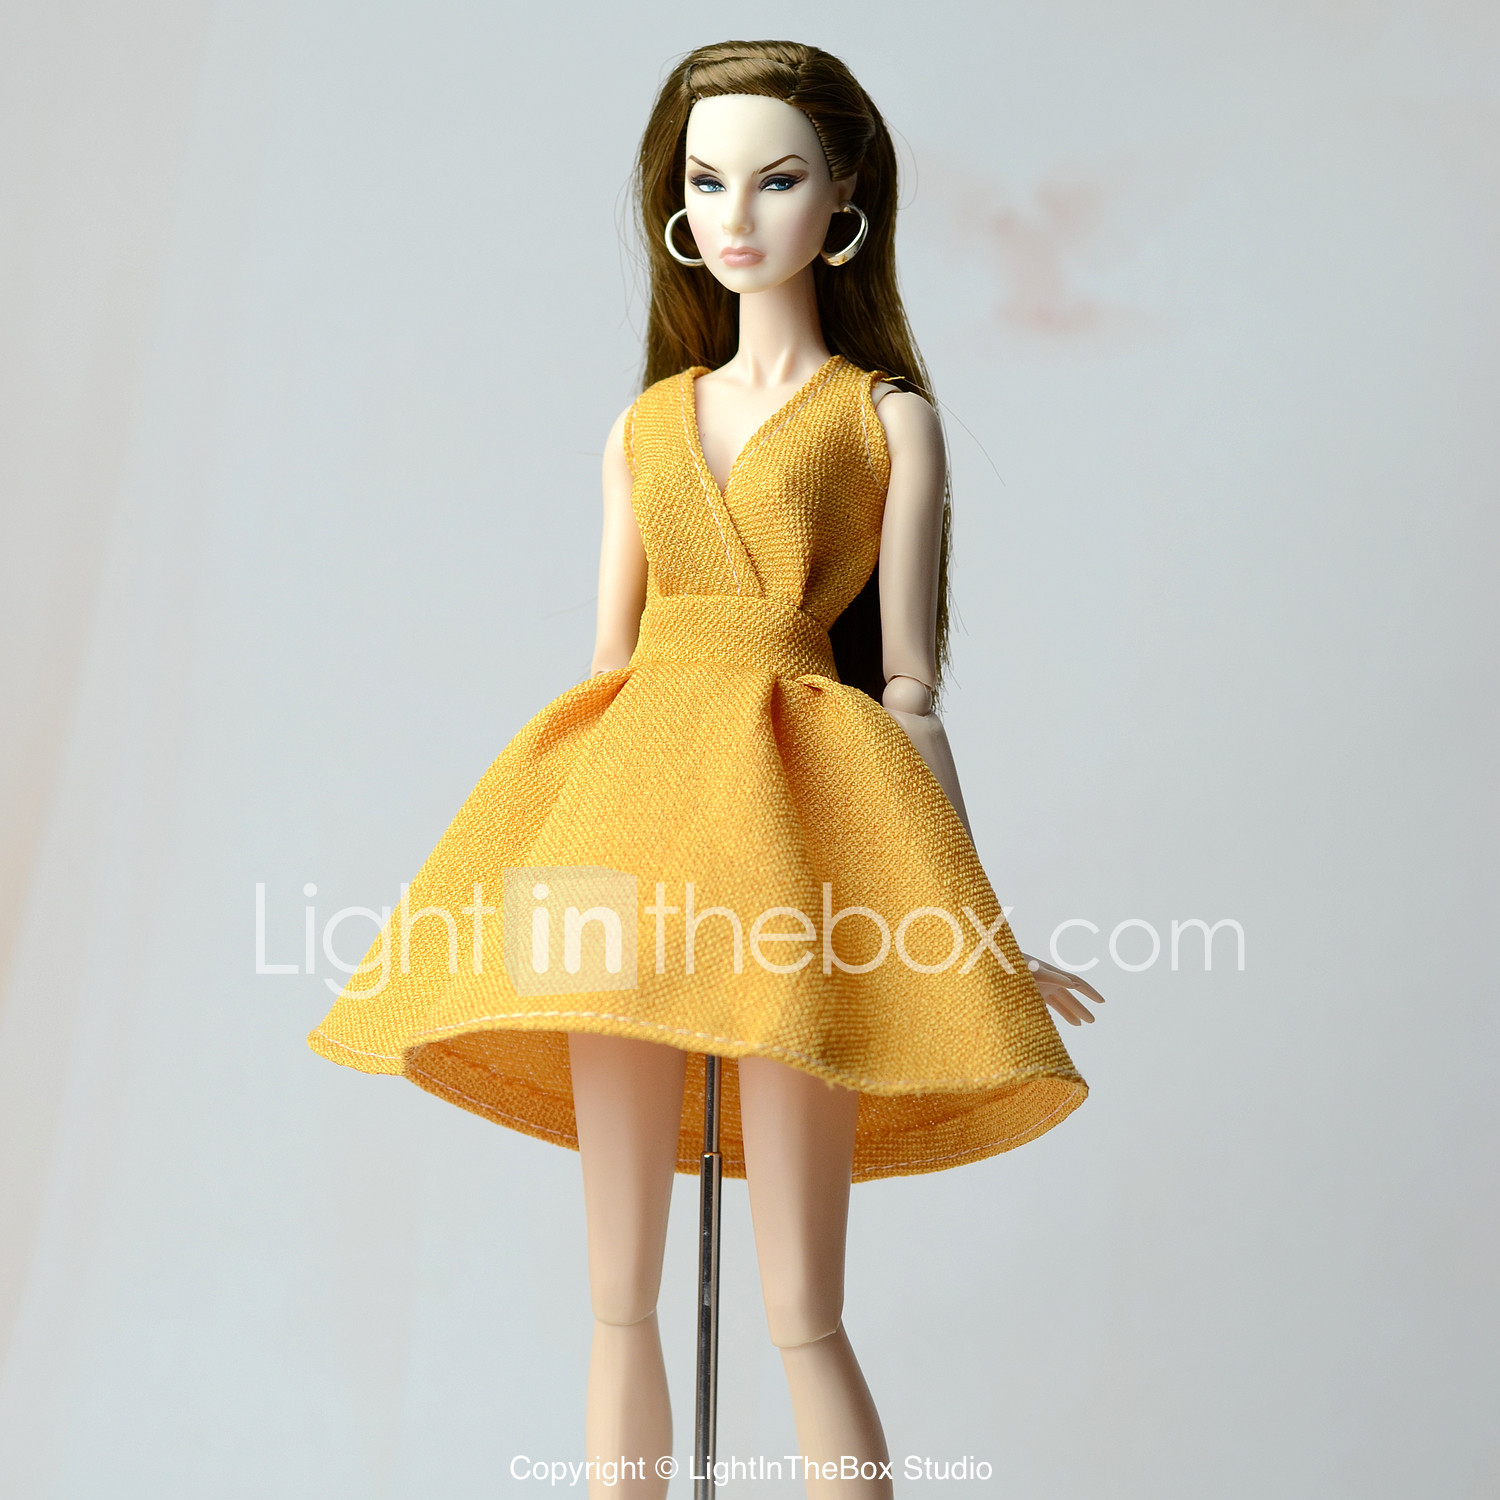 Doll Dress Set 8 Dress Night out Cocktail Fashion Dresses for 11.5 inches Doll